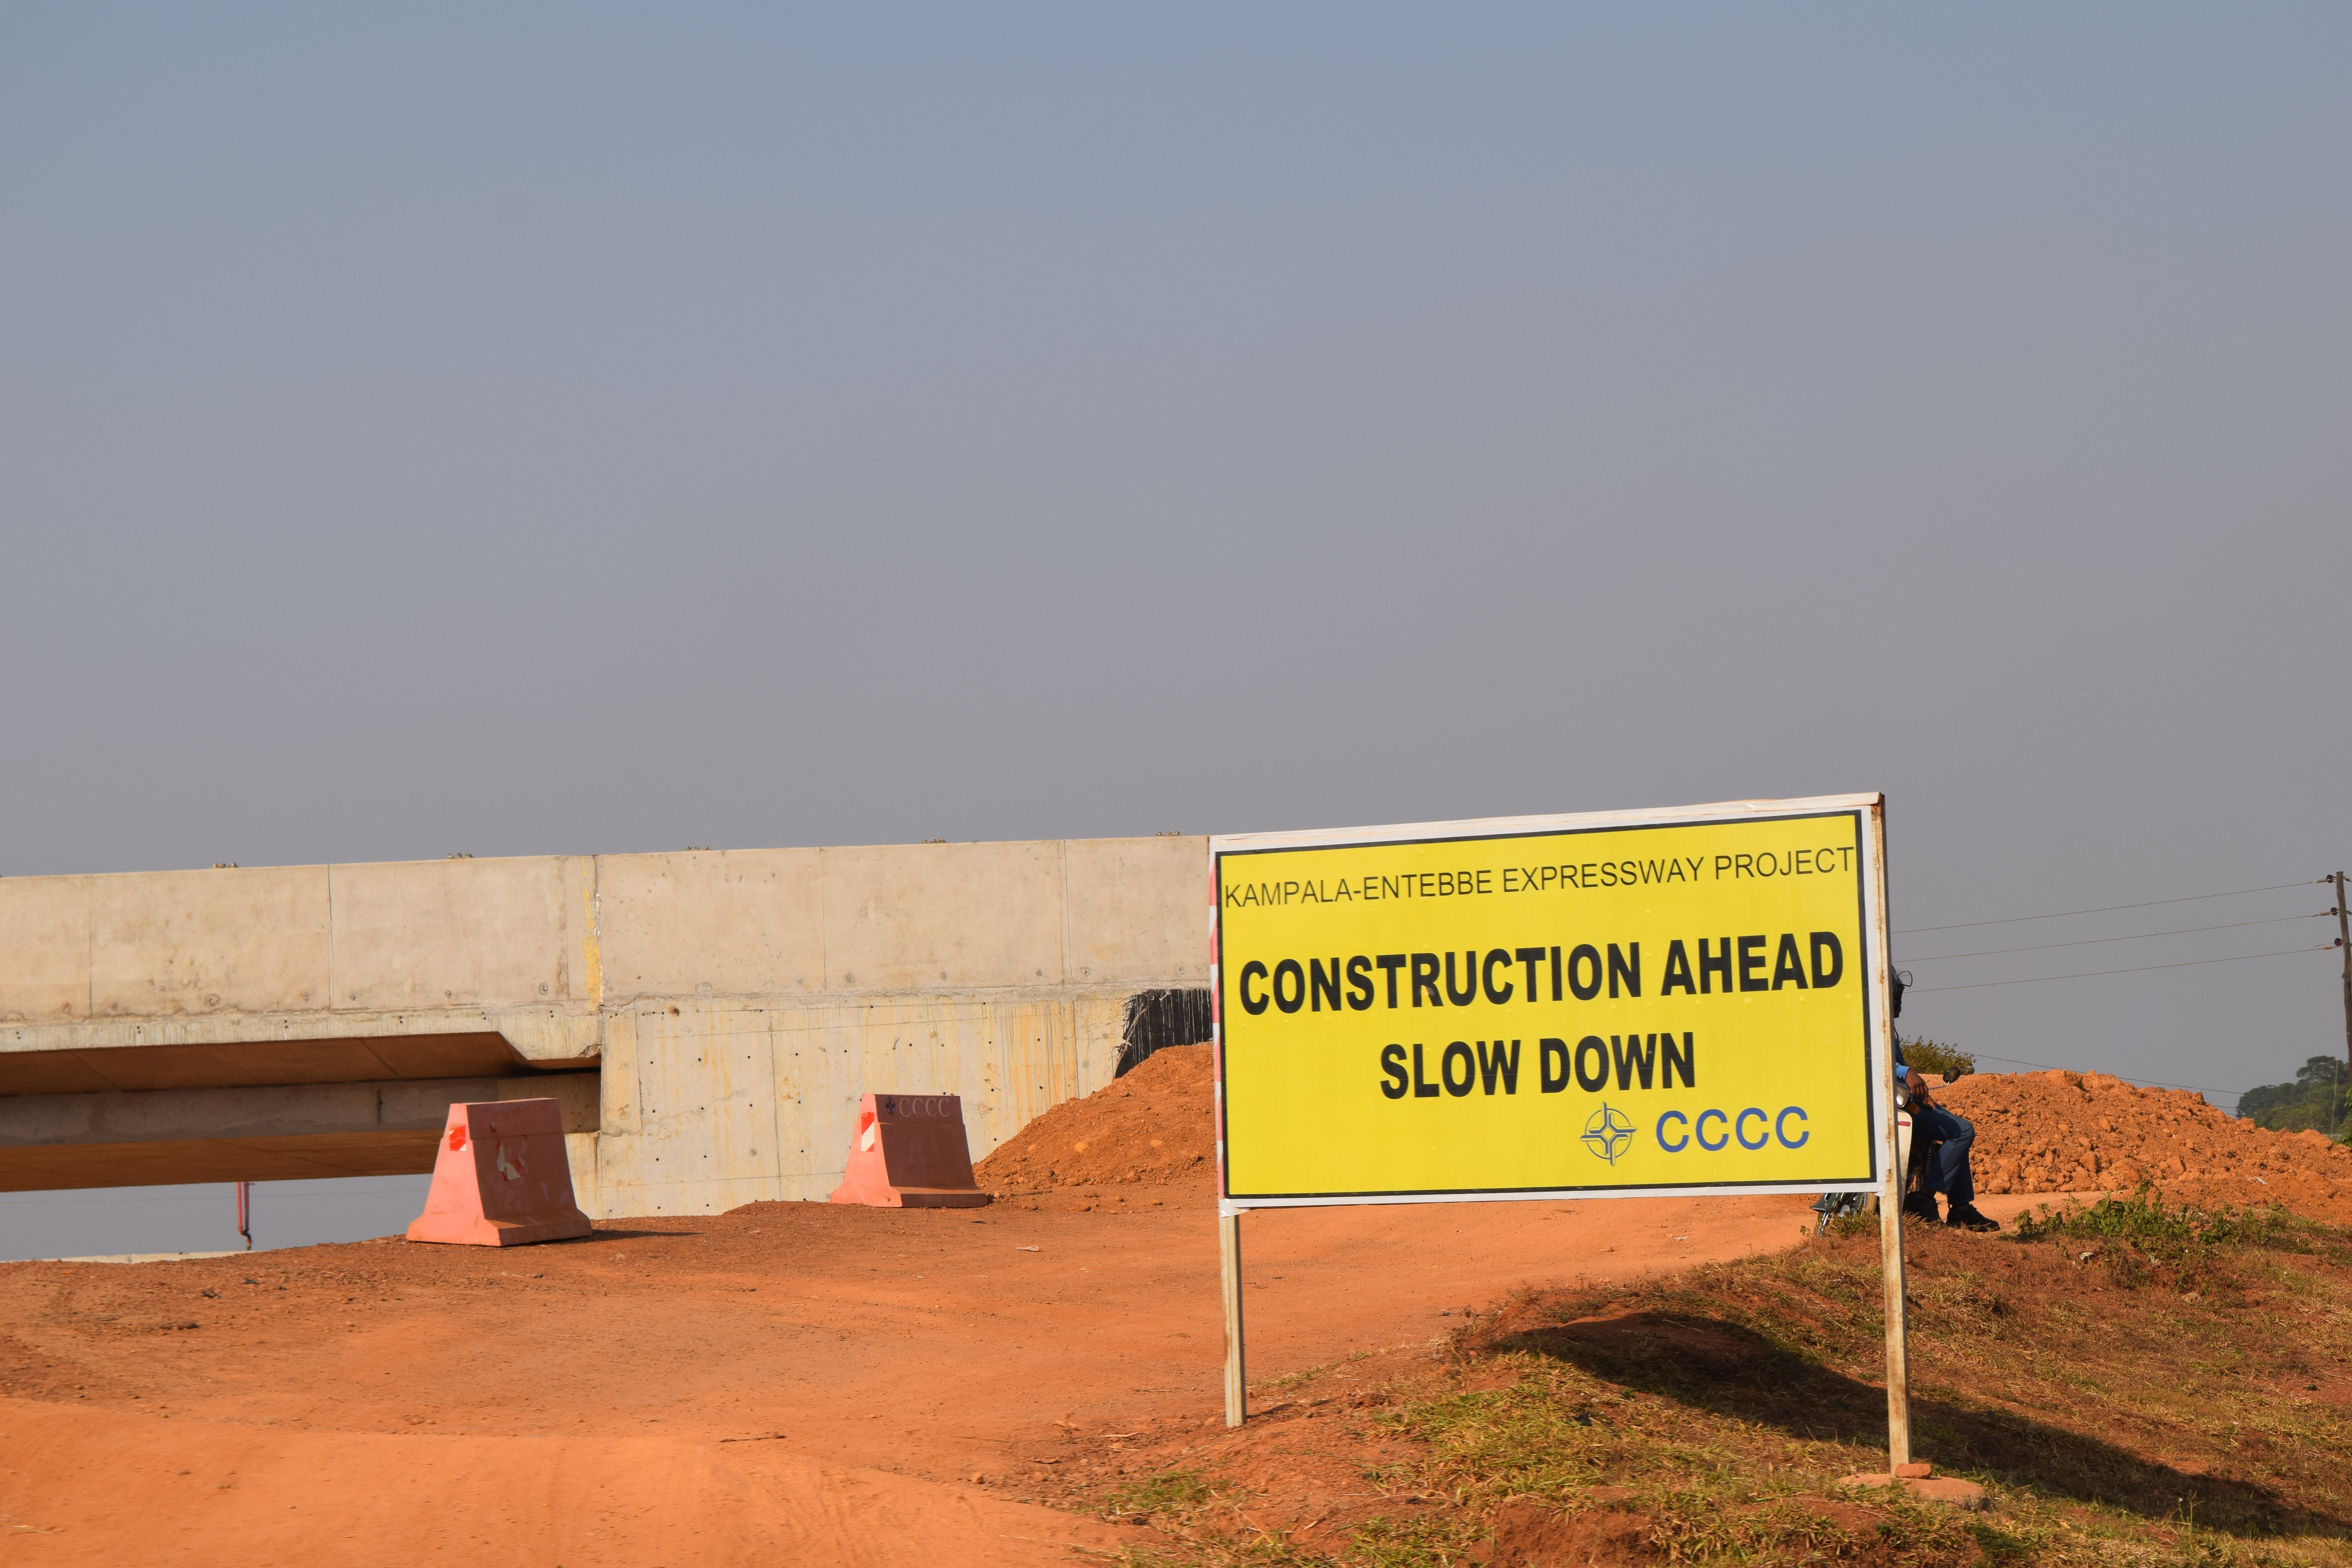 Under construction: the Chinese-funded Entebbe-Kampala Expressway. Photo credit: Dylan Patterson/Flickr, CC BY-SA